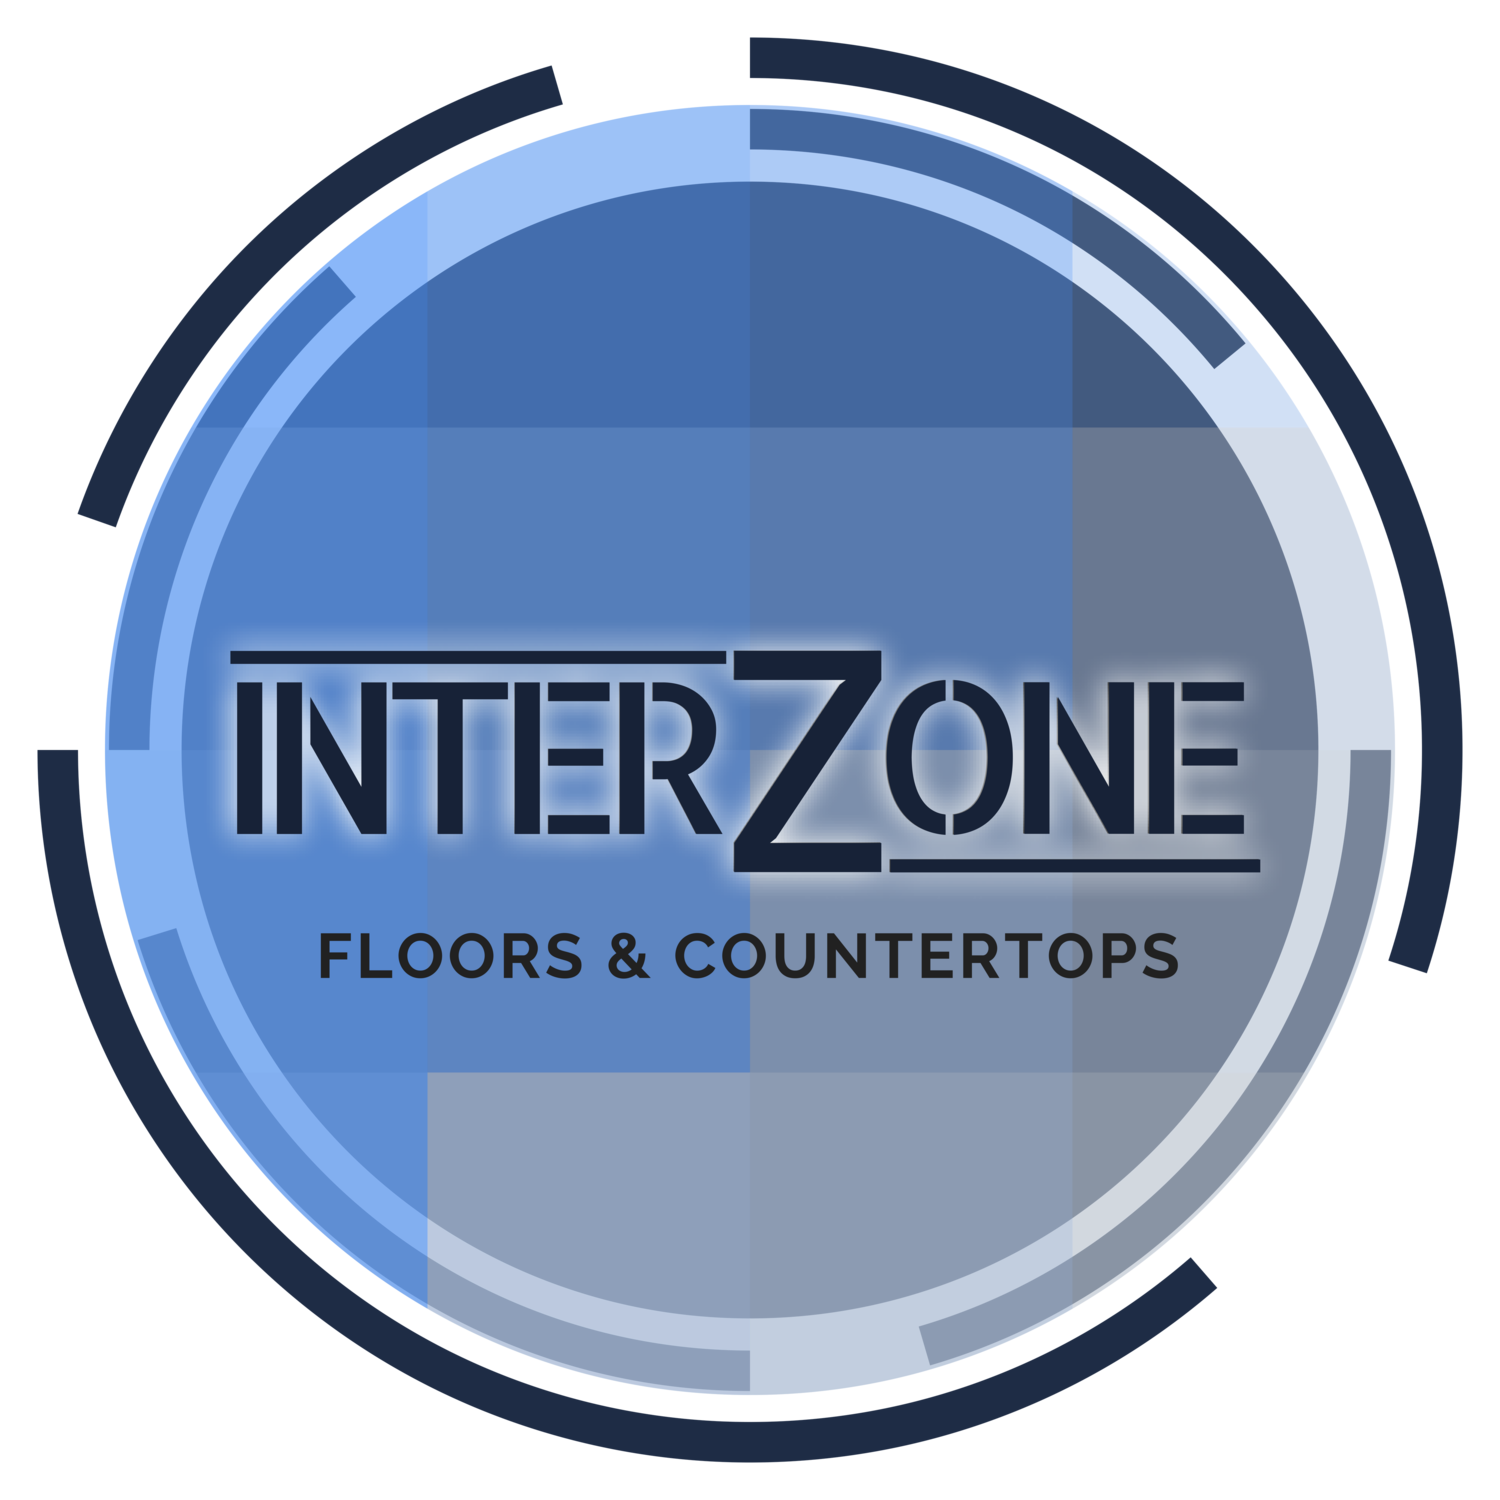 Interzone Floors and Countertops